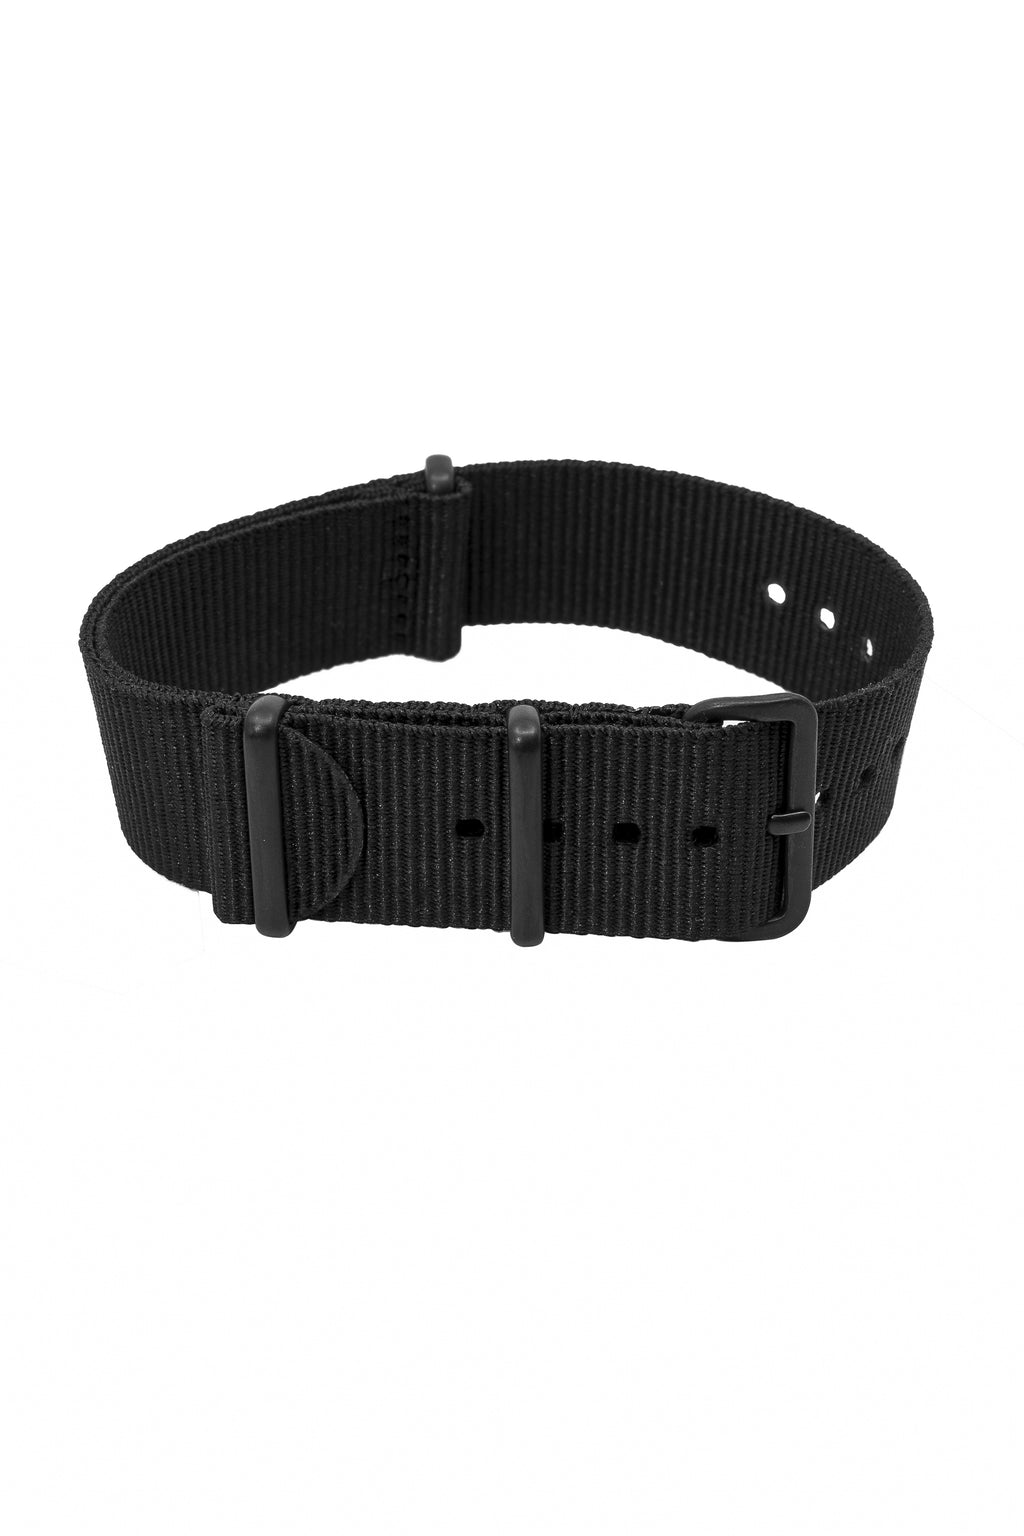 Nato Watch Straps in BLACK with PVD Buckle and Keepers